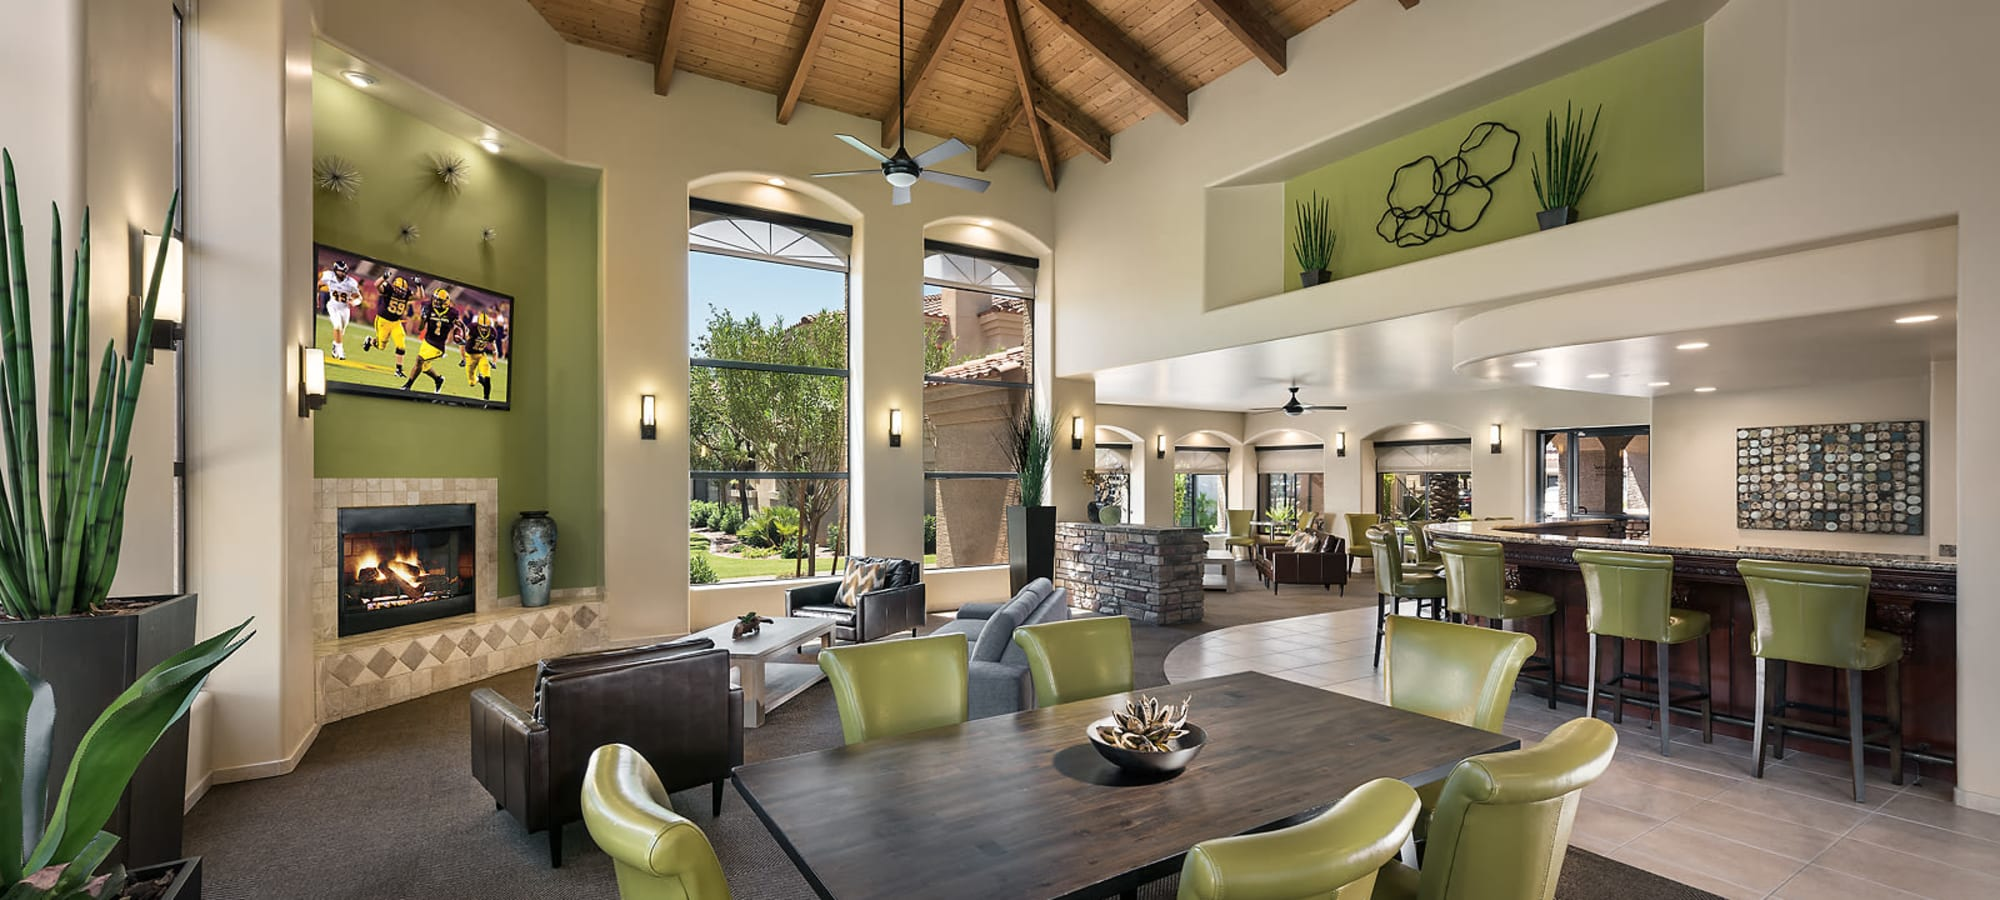 Gorgeous resident clubhouse interior at San Pedregal in Phoenix, Arizona